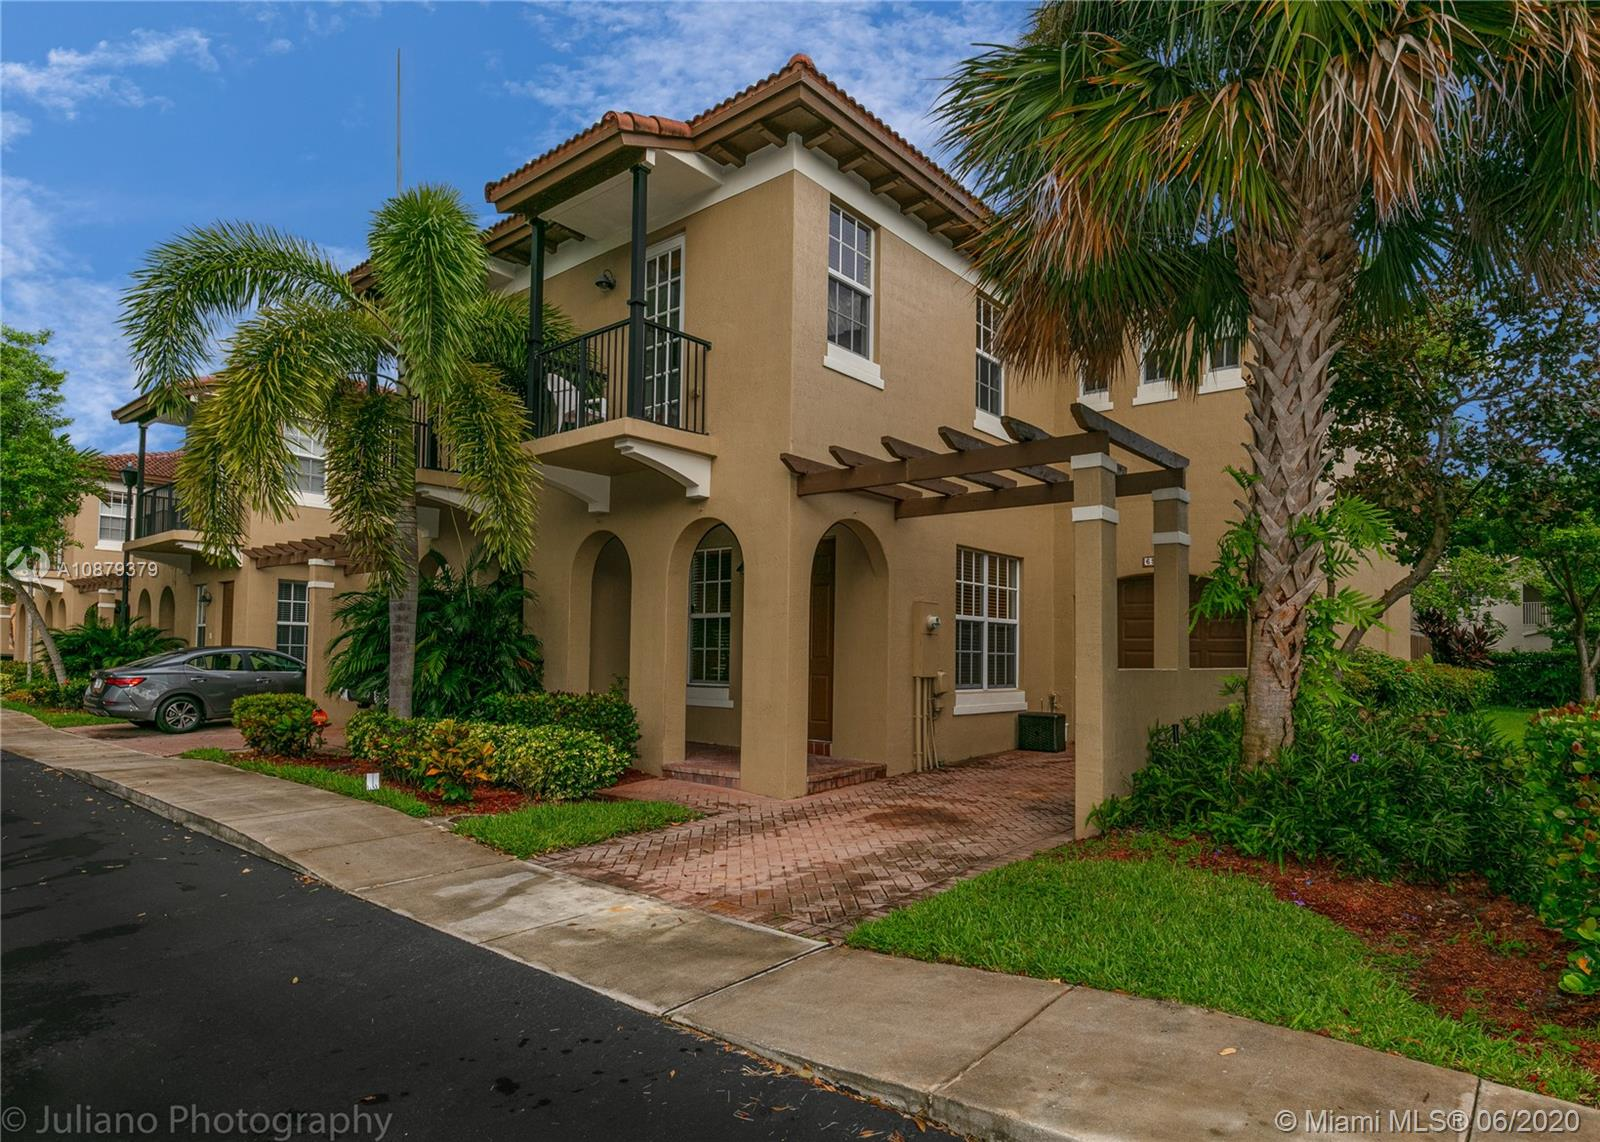 Stunning Mediterranean-style townhome, Gated Community with a lovely Pool and Children's Playground. Commuter's Dream, less than a Mile from Turnpike and 3 Miles from 95. Great Guest Bedrooms with Walk-in Closets, Master Bedroom with His/Her Walk-in Closets and Cozy balcony to enjoy your coffee in the Morning. New AC Unit (2019) and Amazing Washer/Dryer Set Located on the Second Floor. Gourmet Kitchen with granite Counters, and Dark Wood cabinets. Move in Ready. A+ Schools. Balance of Home Warranty's Included